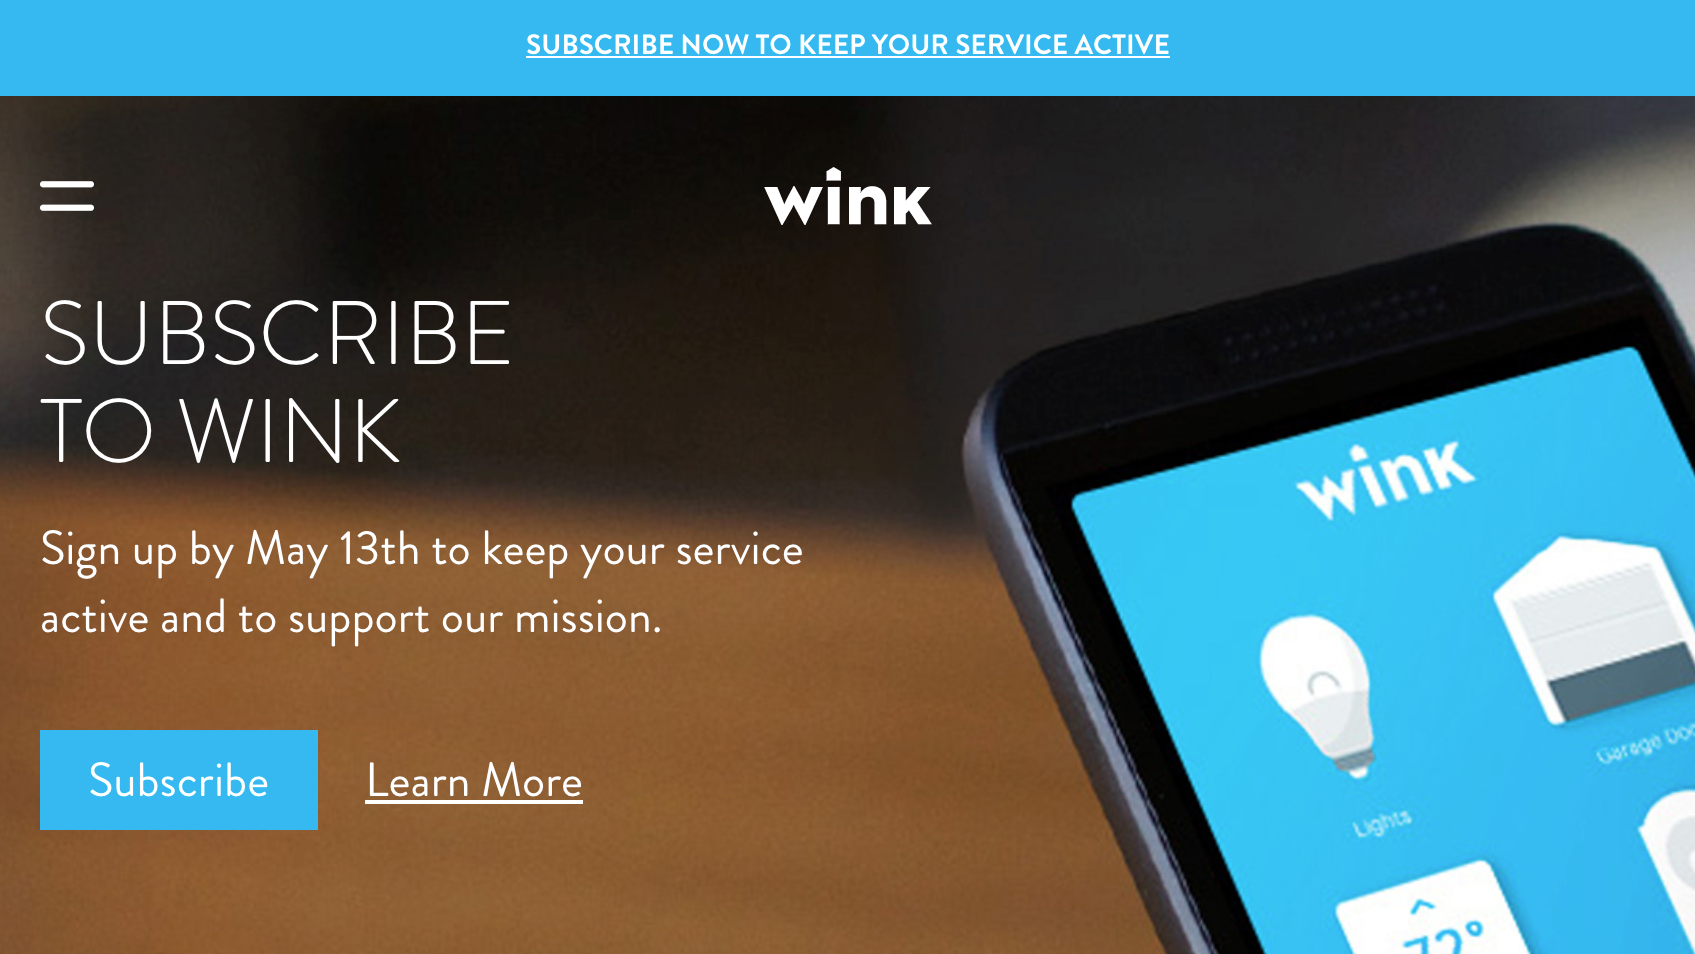 Wink Pulls Ultimate Dick Move By Forcing Users Into Mandatory Subscriptions